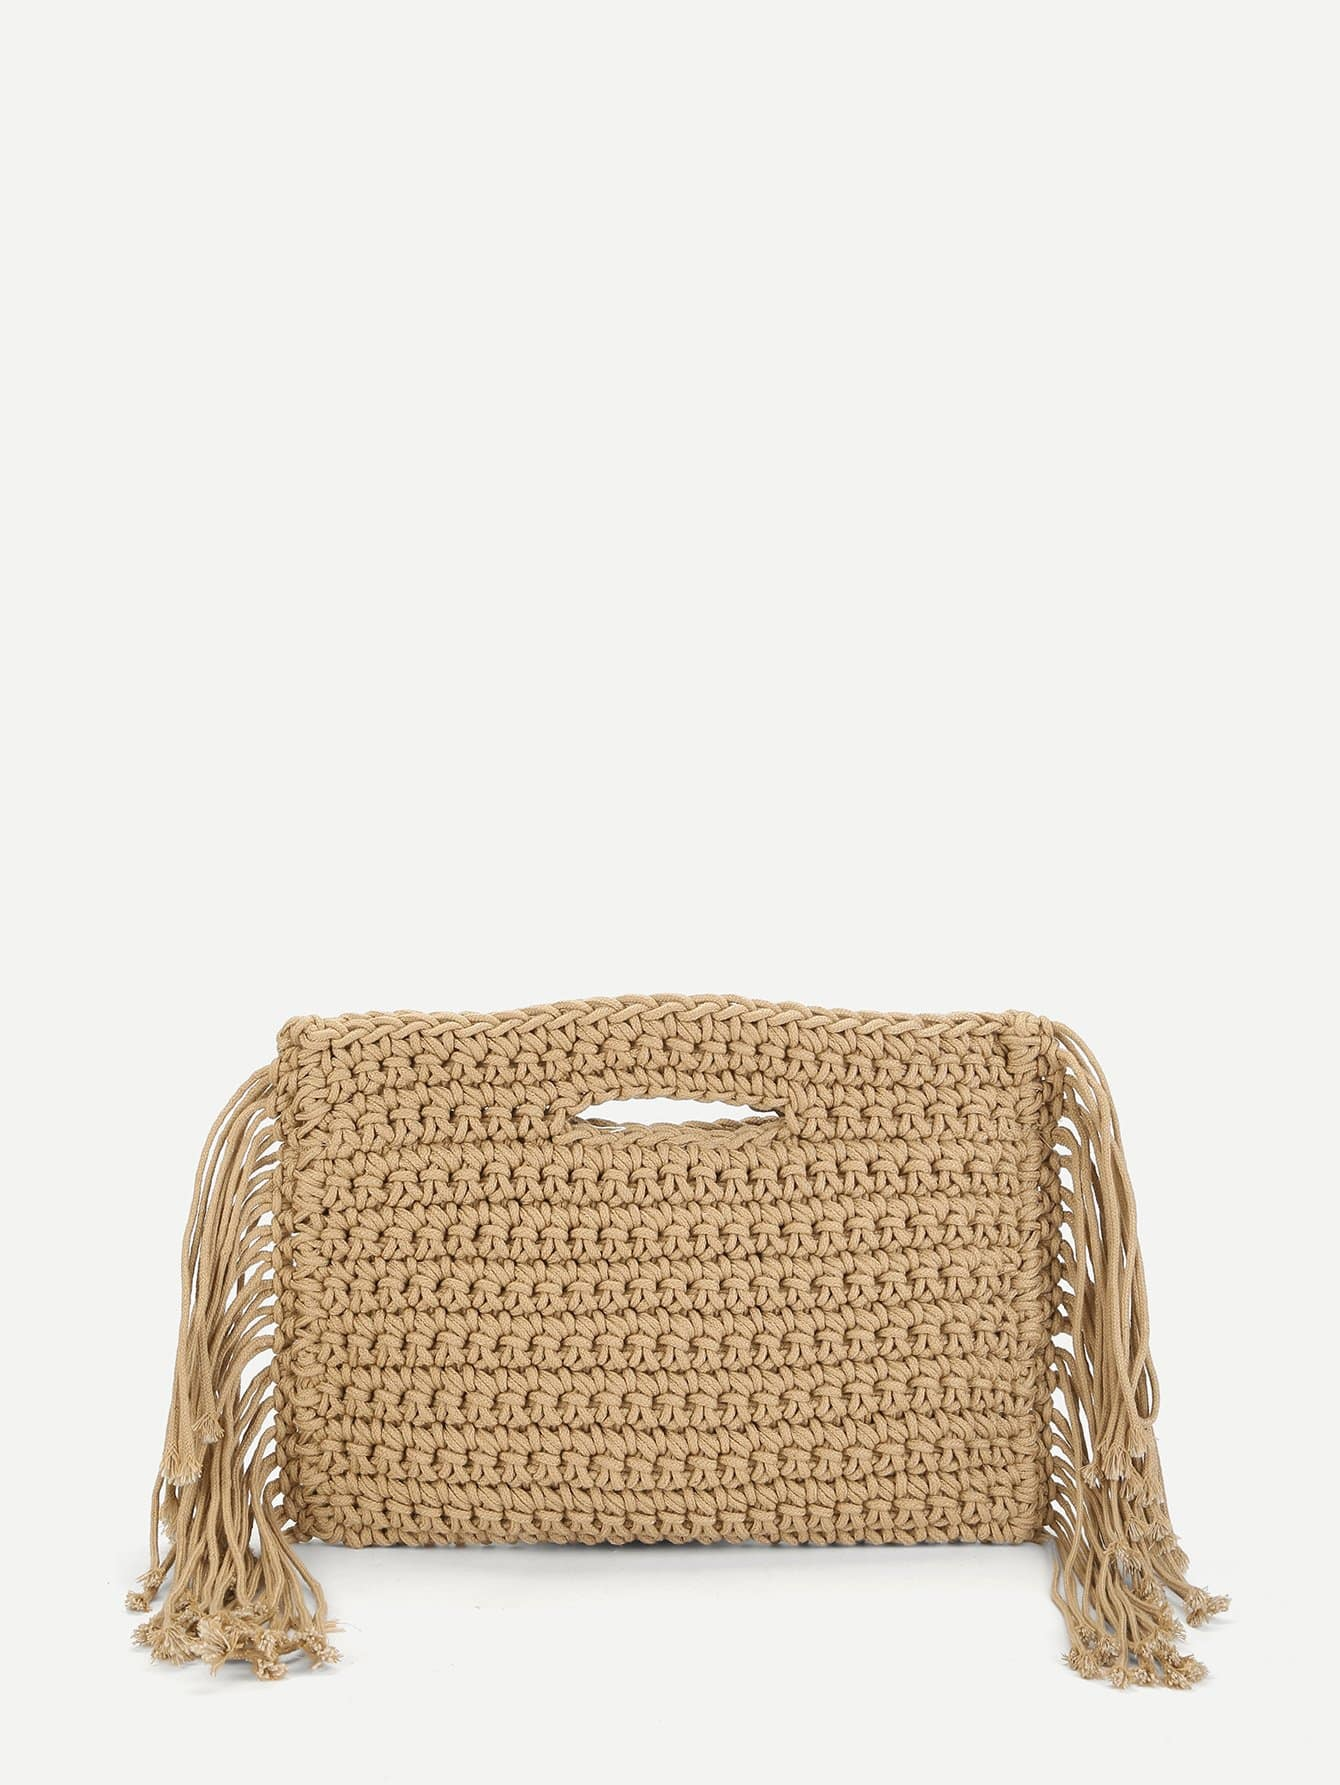 Tassel Trim Crochet Clutch